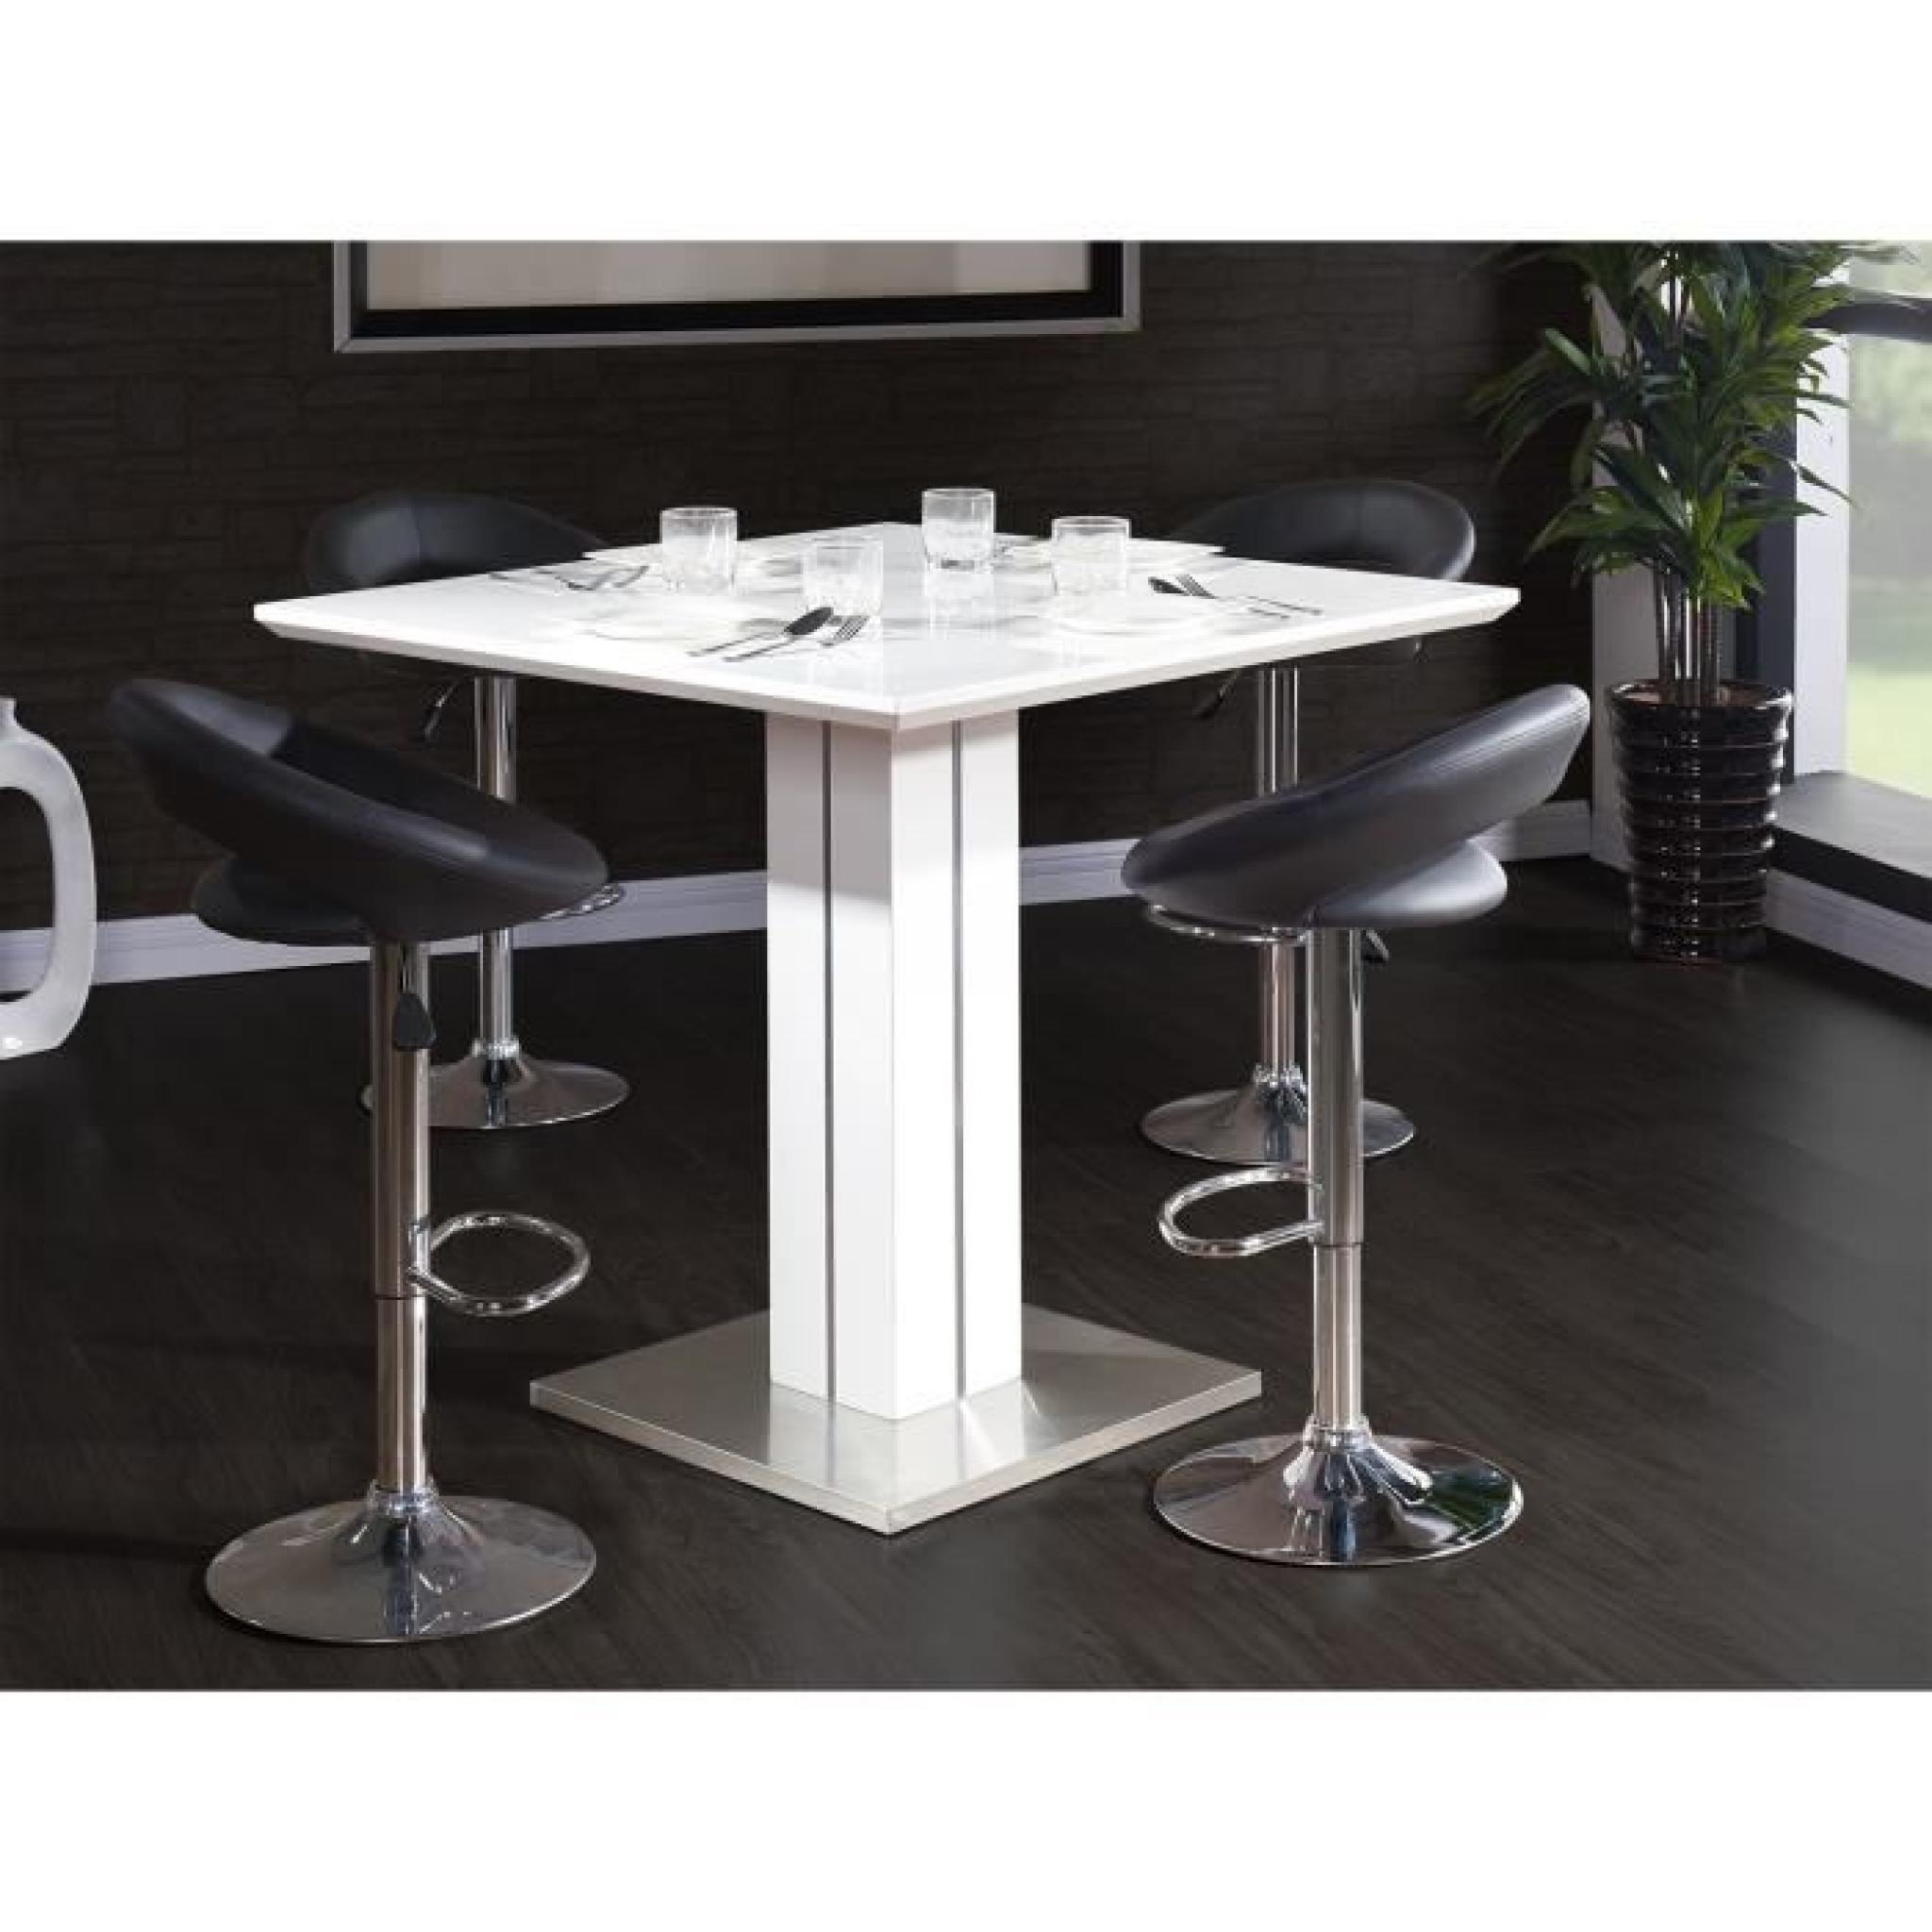 Table salle a manger blanc laque conforama 28 images for Table a manger laque blanc pas cher